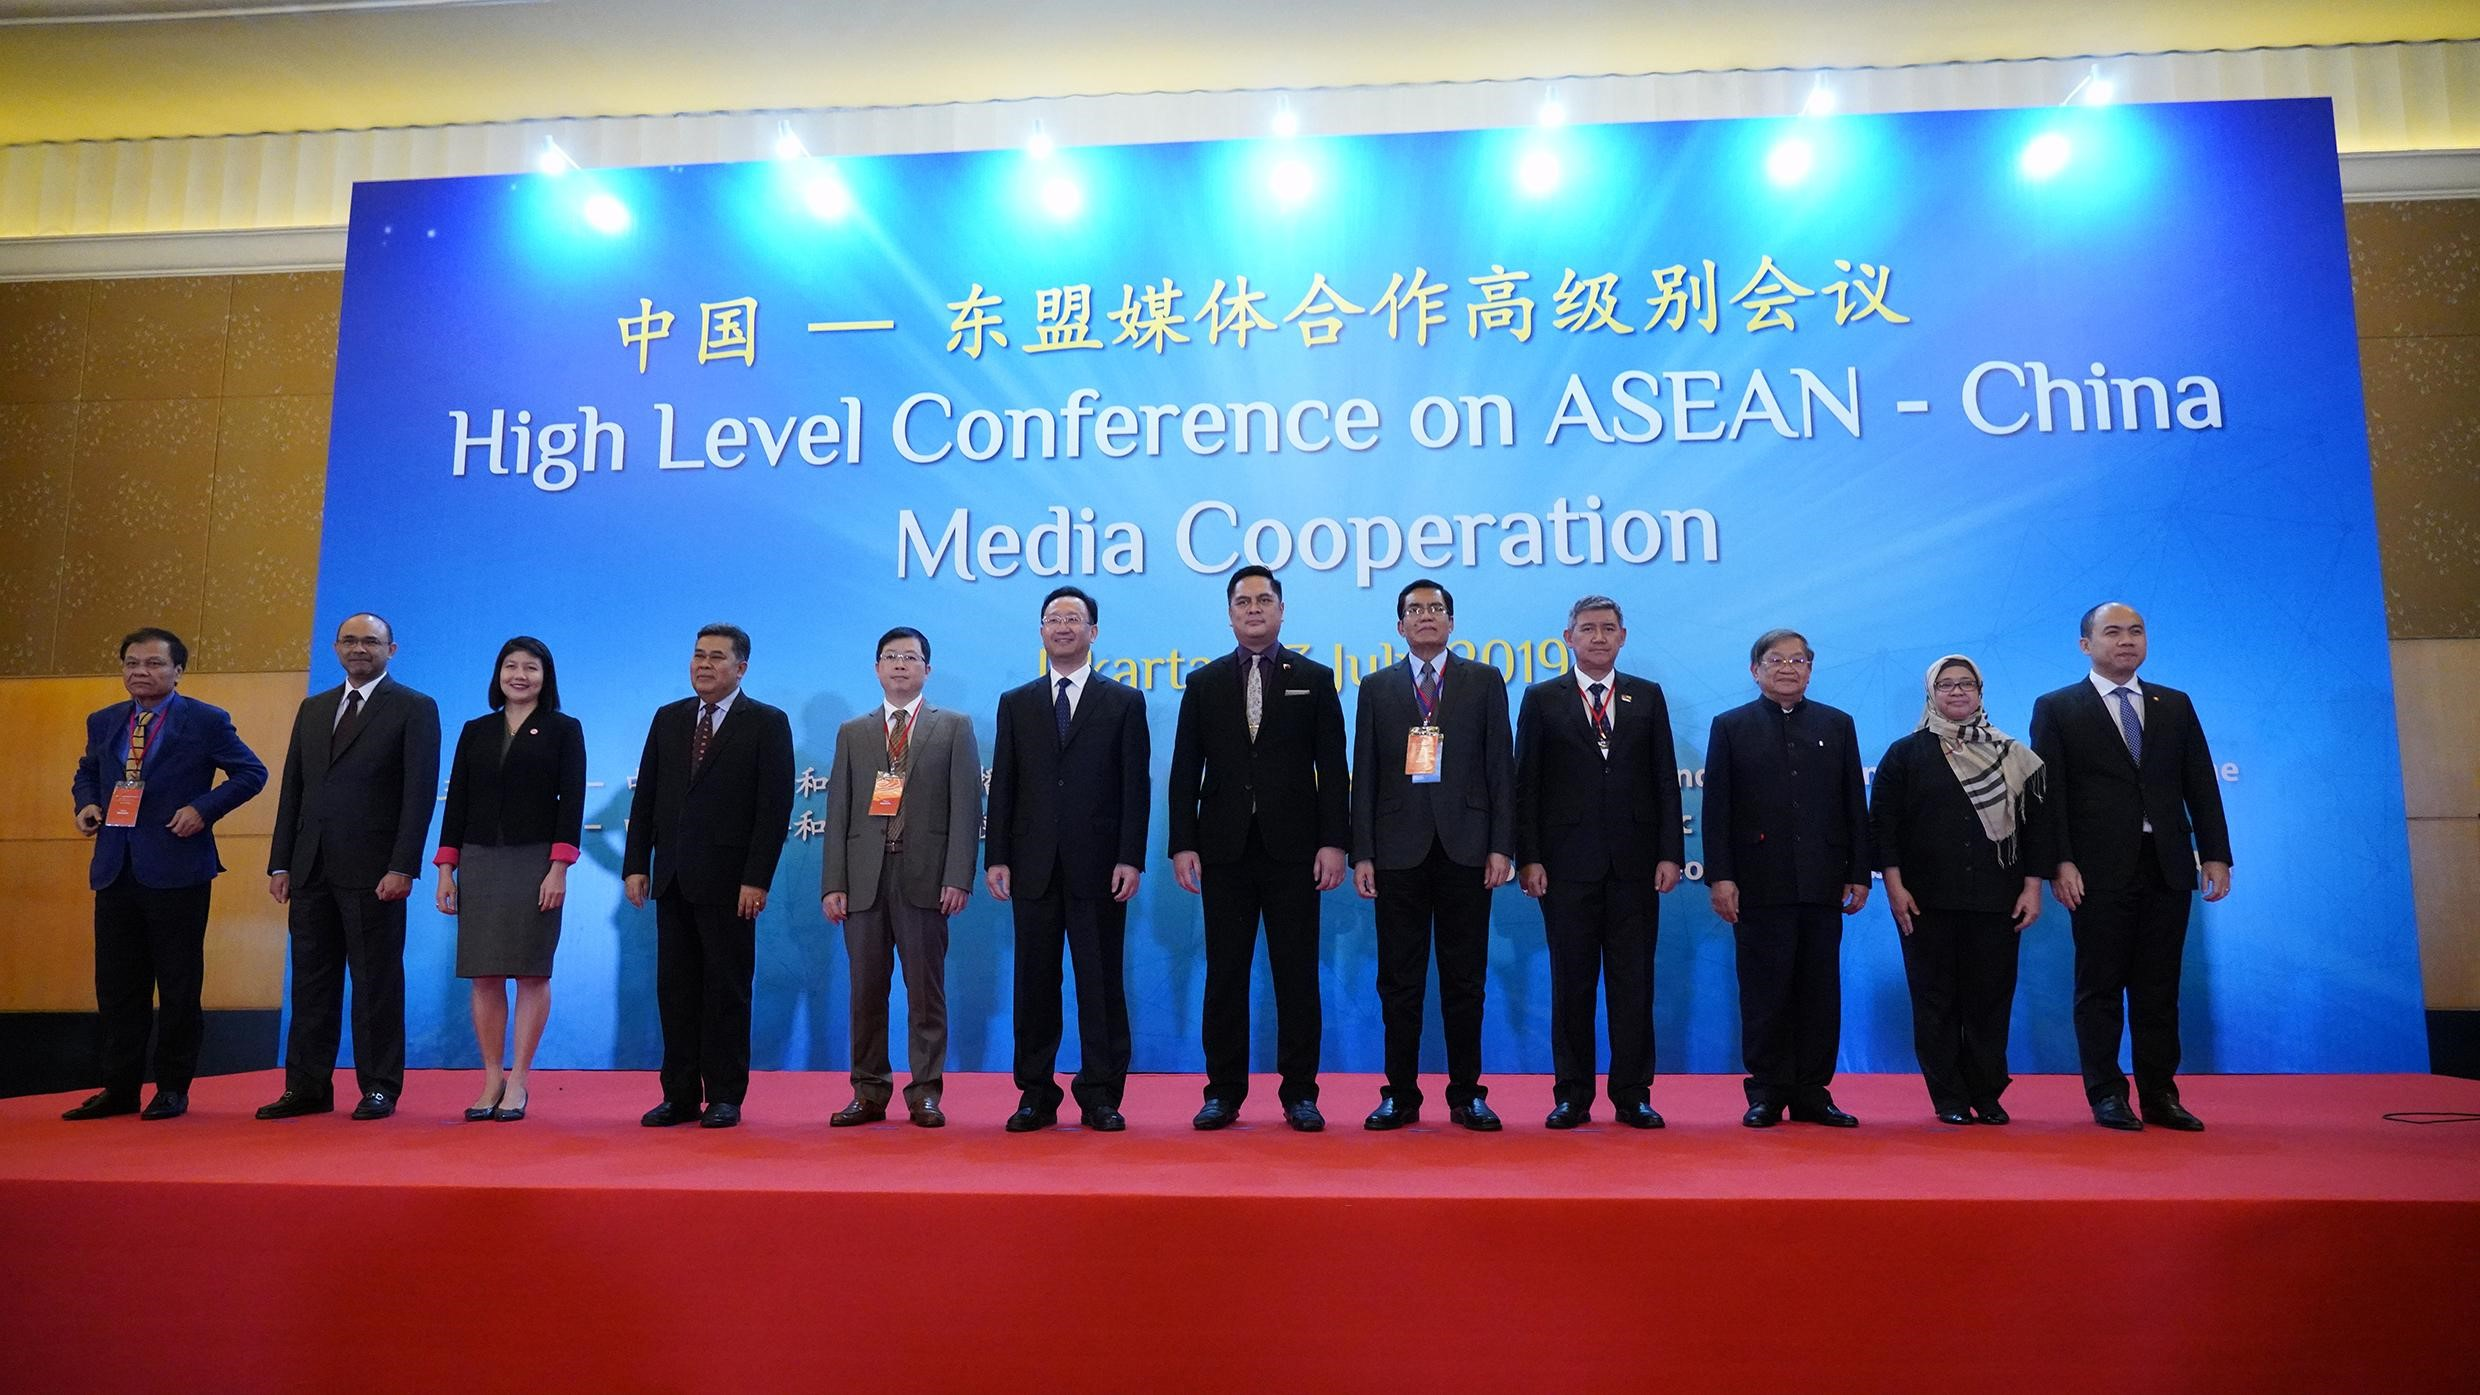 Enhanced media cooperation between China and ASEAN